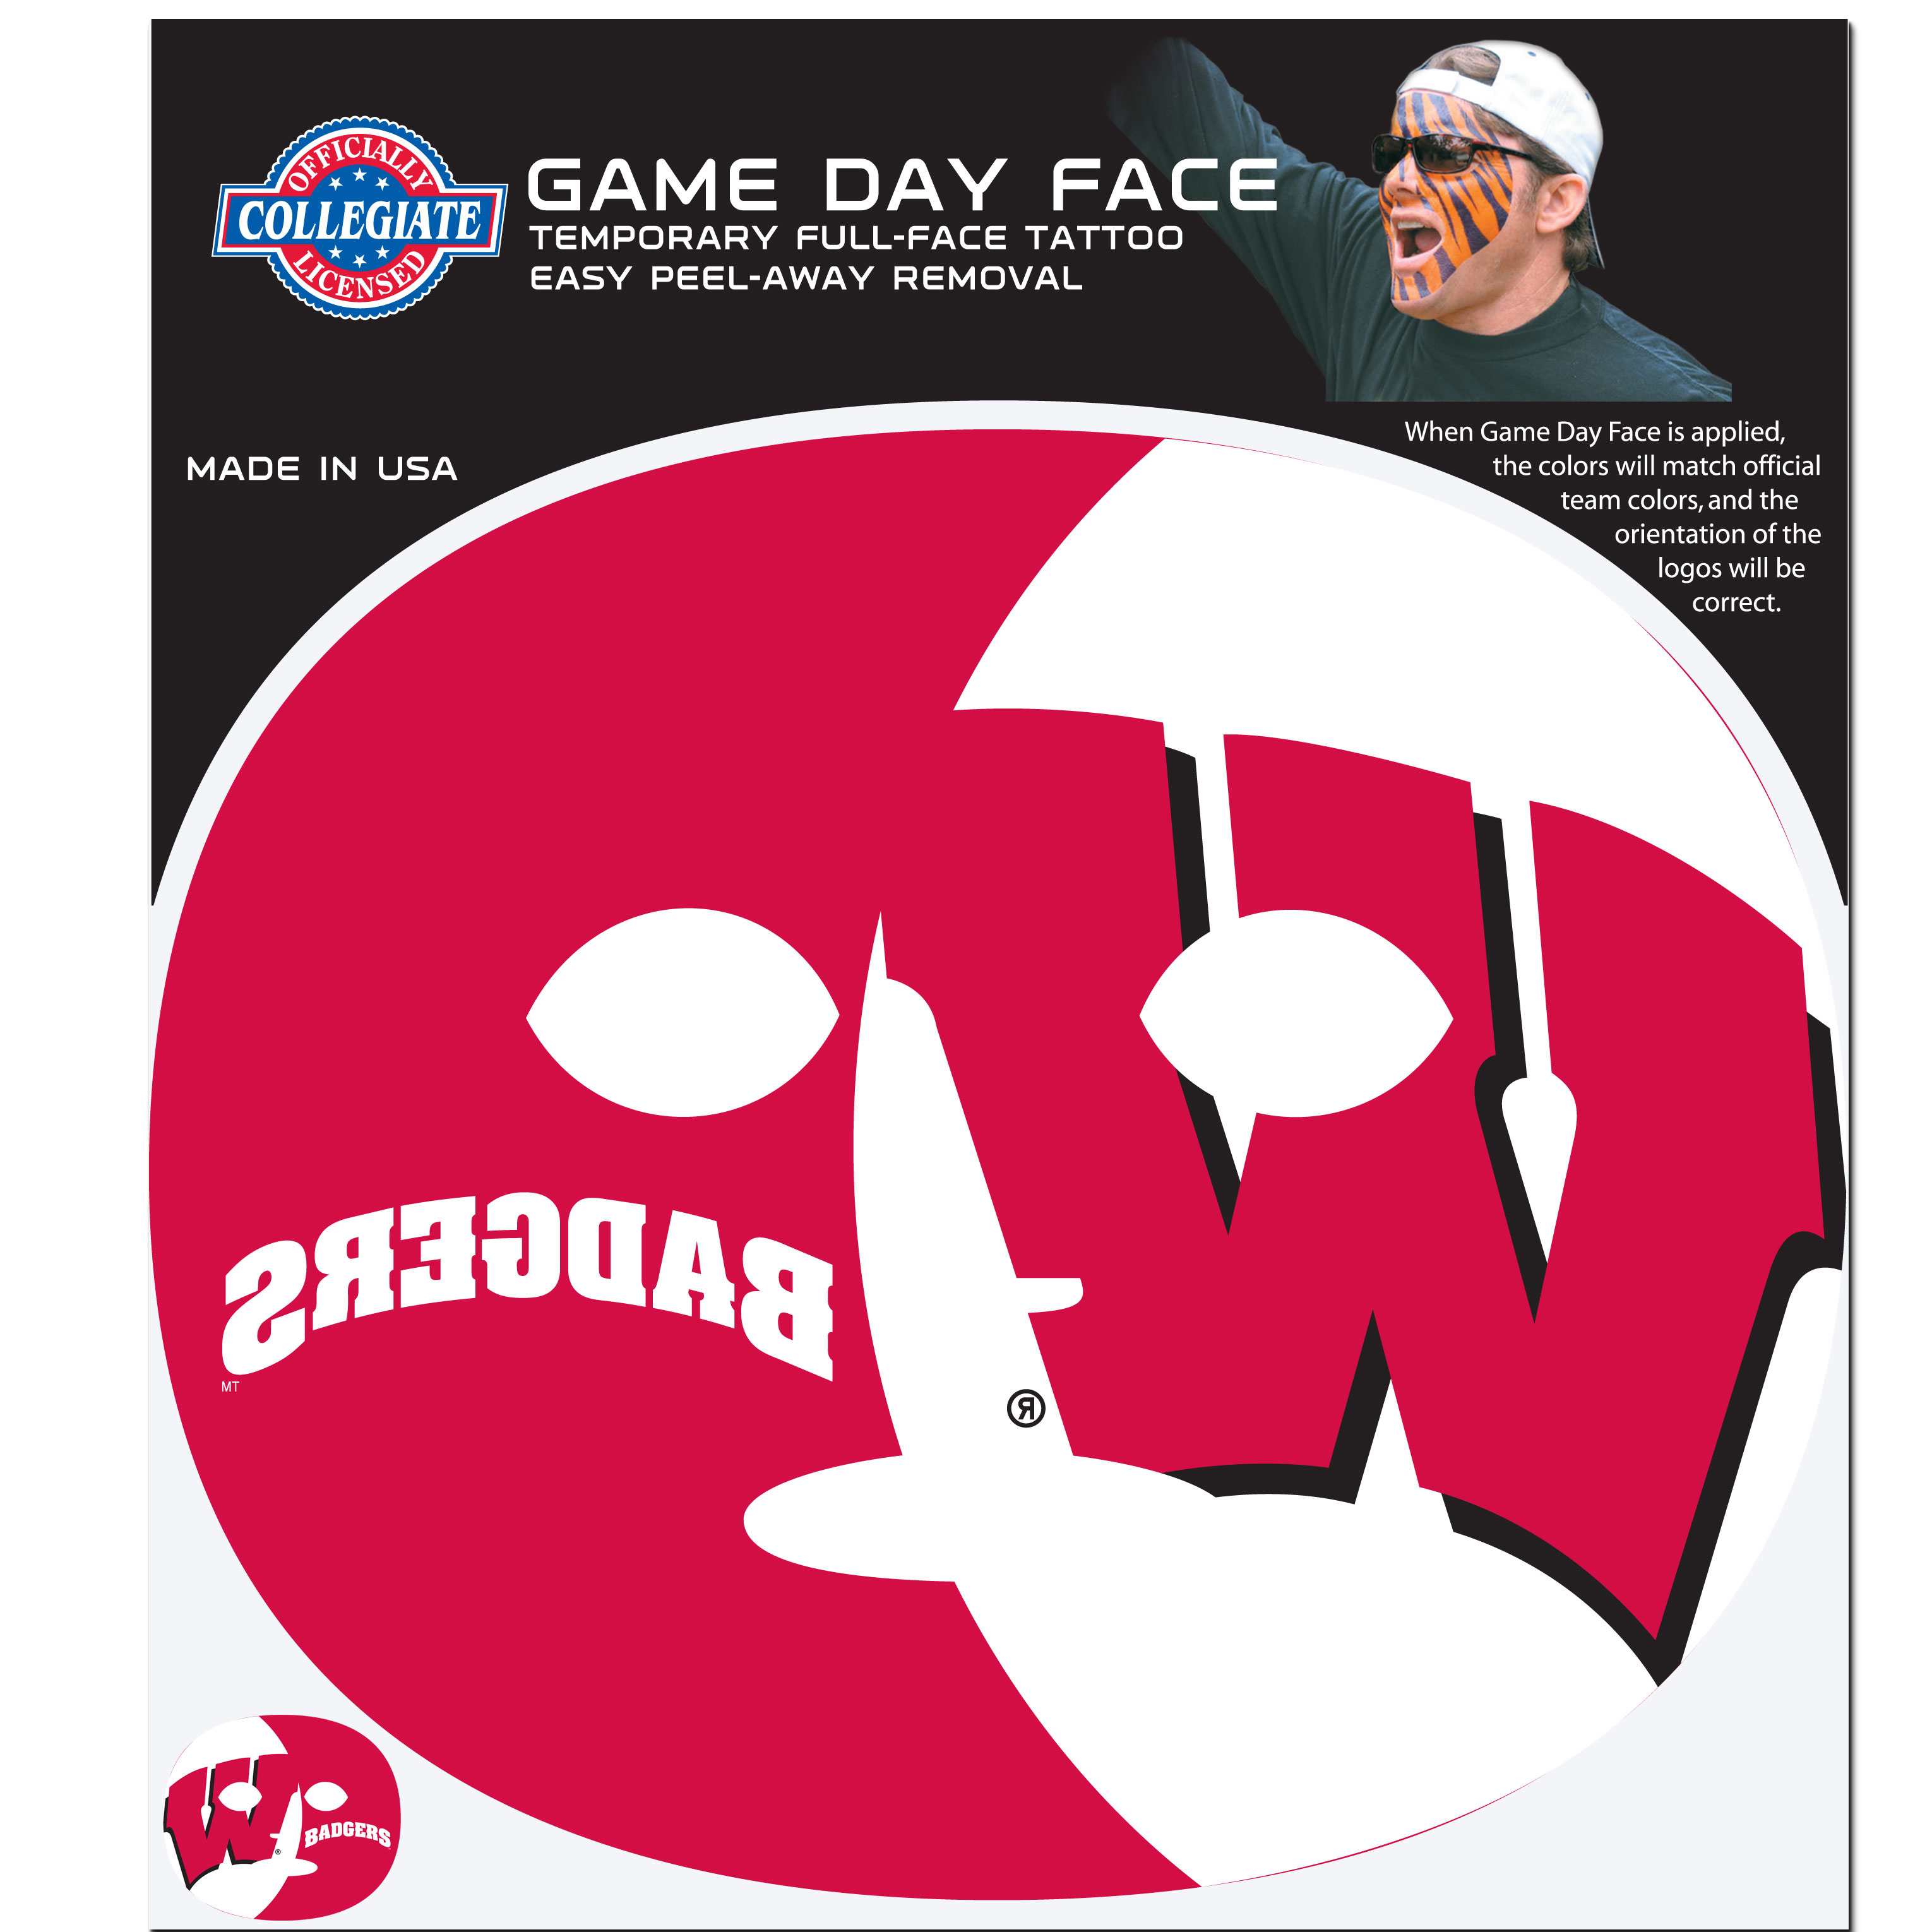 Wisconsin Badgers Game Face Temporary Tattoo - No better way to show your Wisconsin Badgers pride than by painting your face. Siskiyou's Game Day Face Temporary Tattoo isn't your typical face paint. It is a water based application that doesn't smudge, smear or sweat off  while you're wearing it and easily peels off after you're done celebrating your team's big Win! The temporary tattoo is large enough to trim down to fit your face.  Our Game Day Face Temporary Tattoo's are fun for fans of all ages. You may have seen our product before,  these are the same Temporary Face Tattoos as pitched on ABC's Shark Tank.